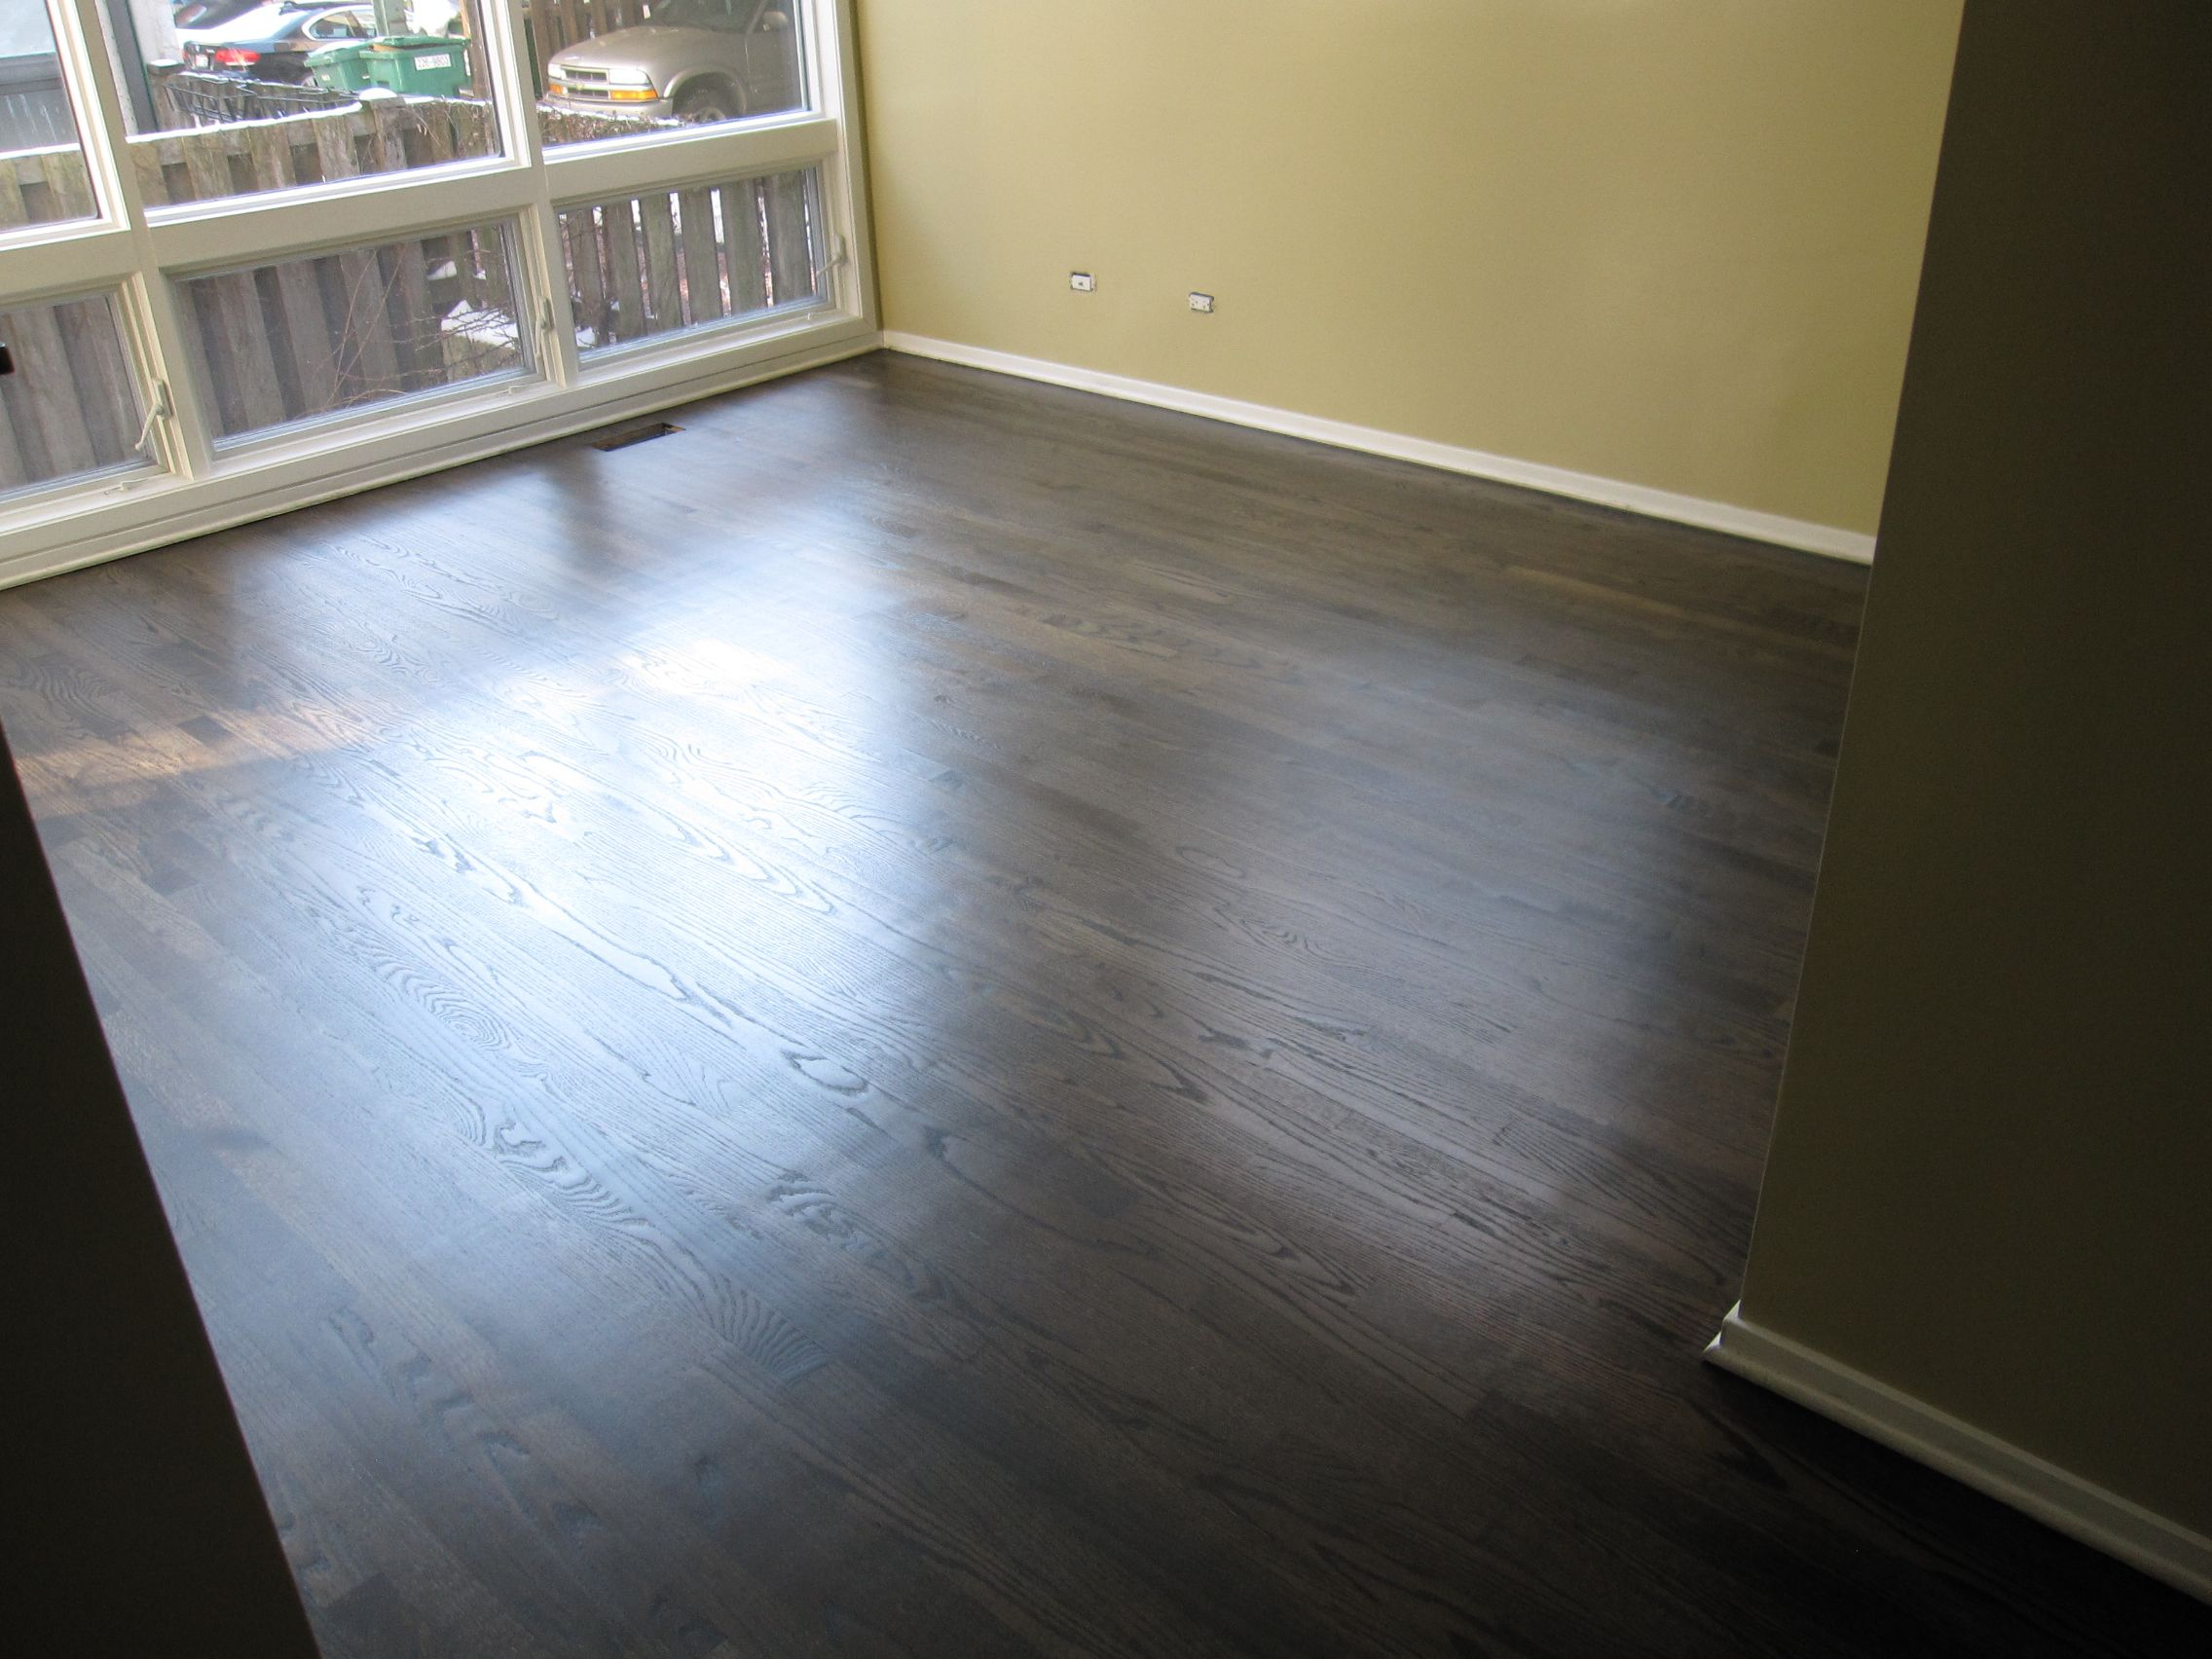 hardwood floor refinish using duraseal ebony stain chicago, il